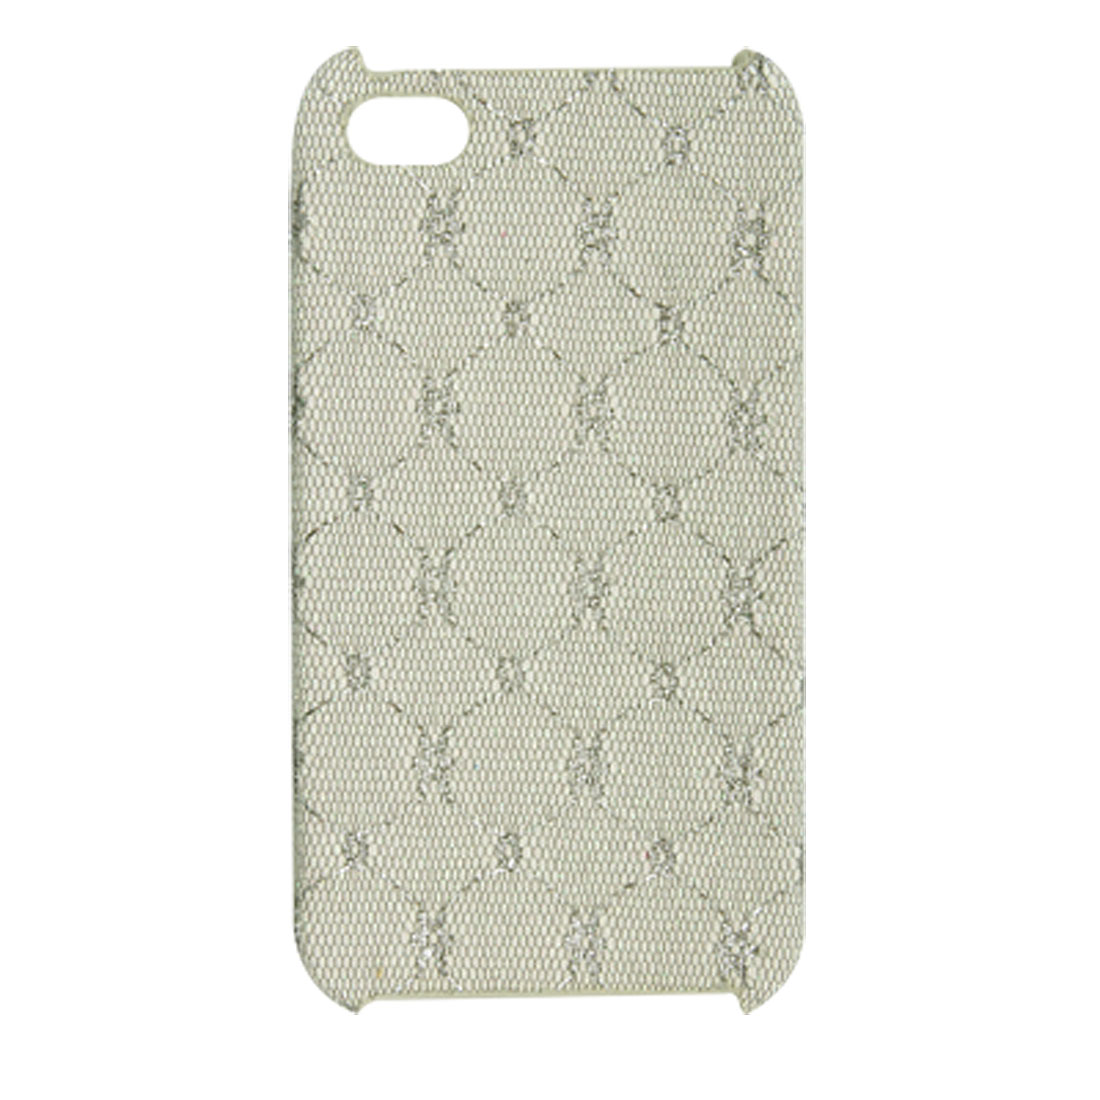 Grey Textured Antislip Glittery Back Shell Case Cover for iPhone 4 4G